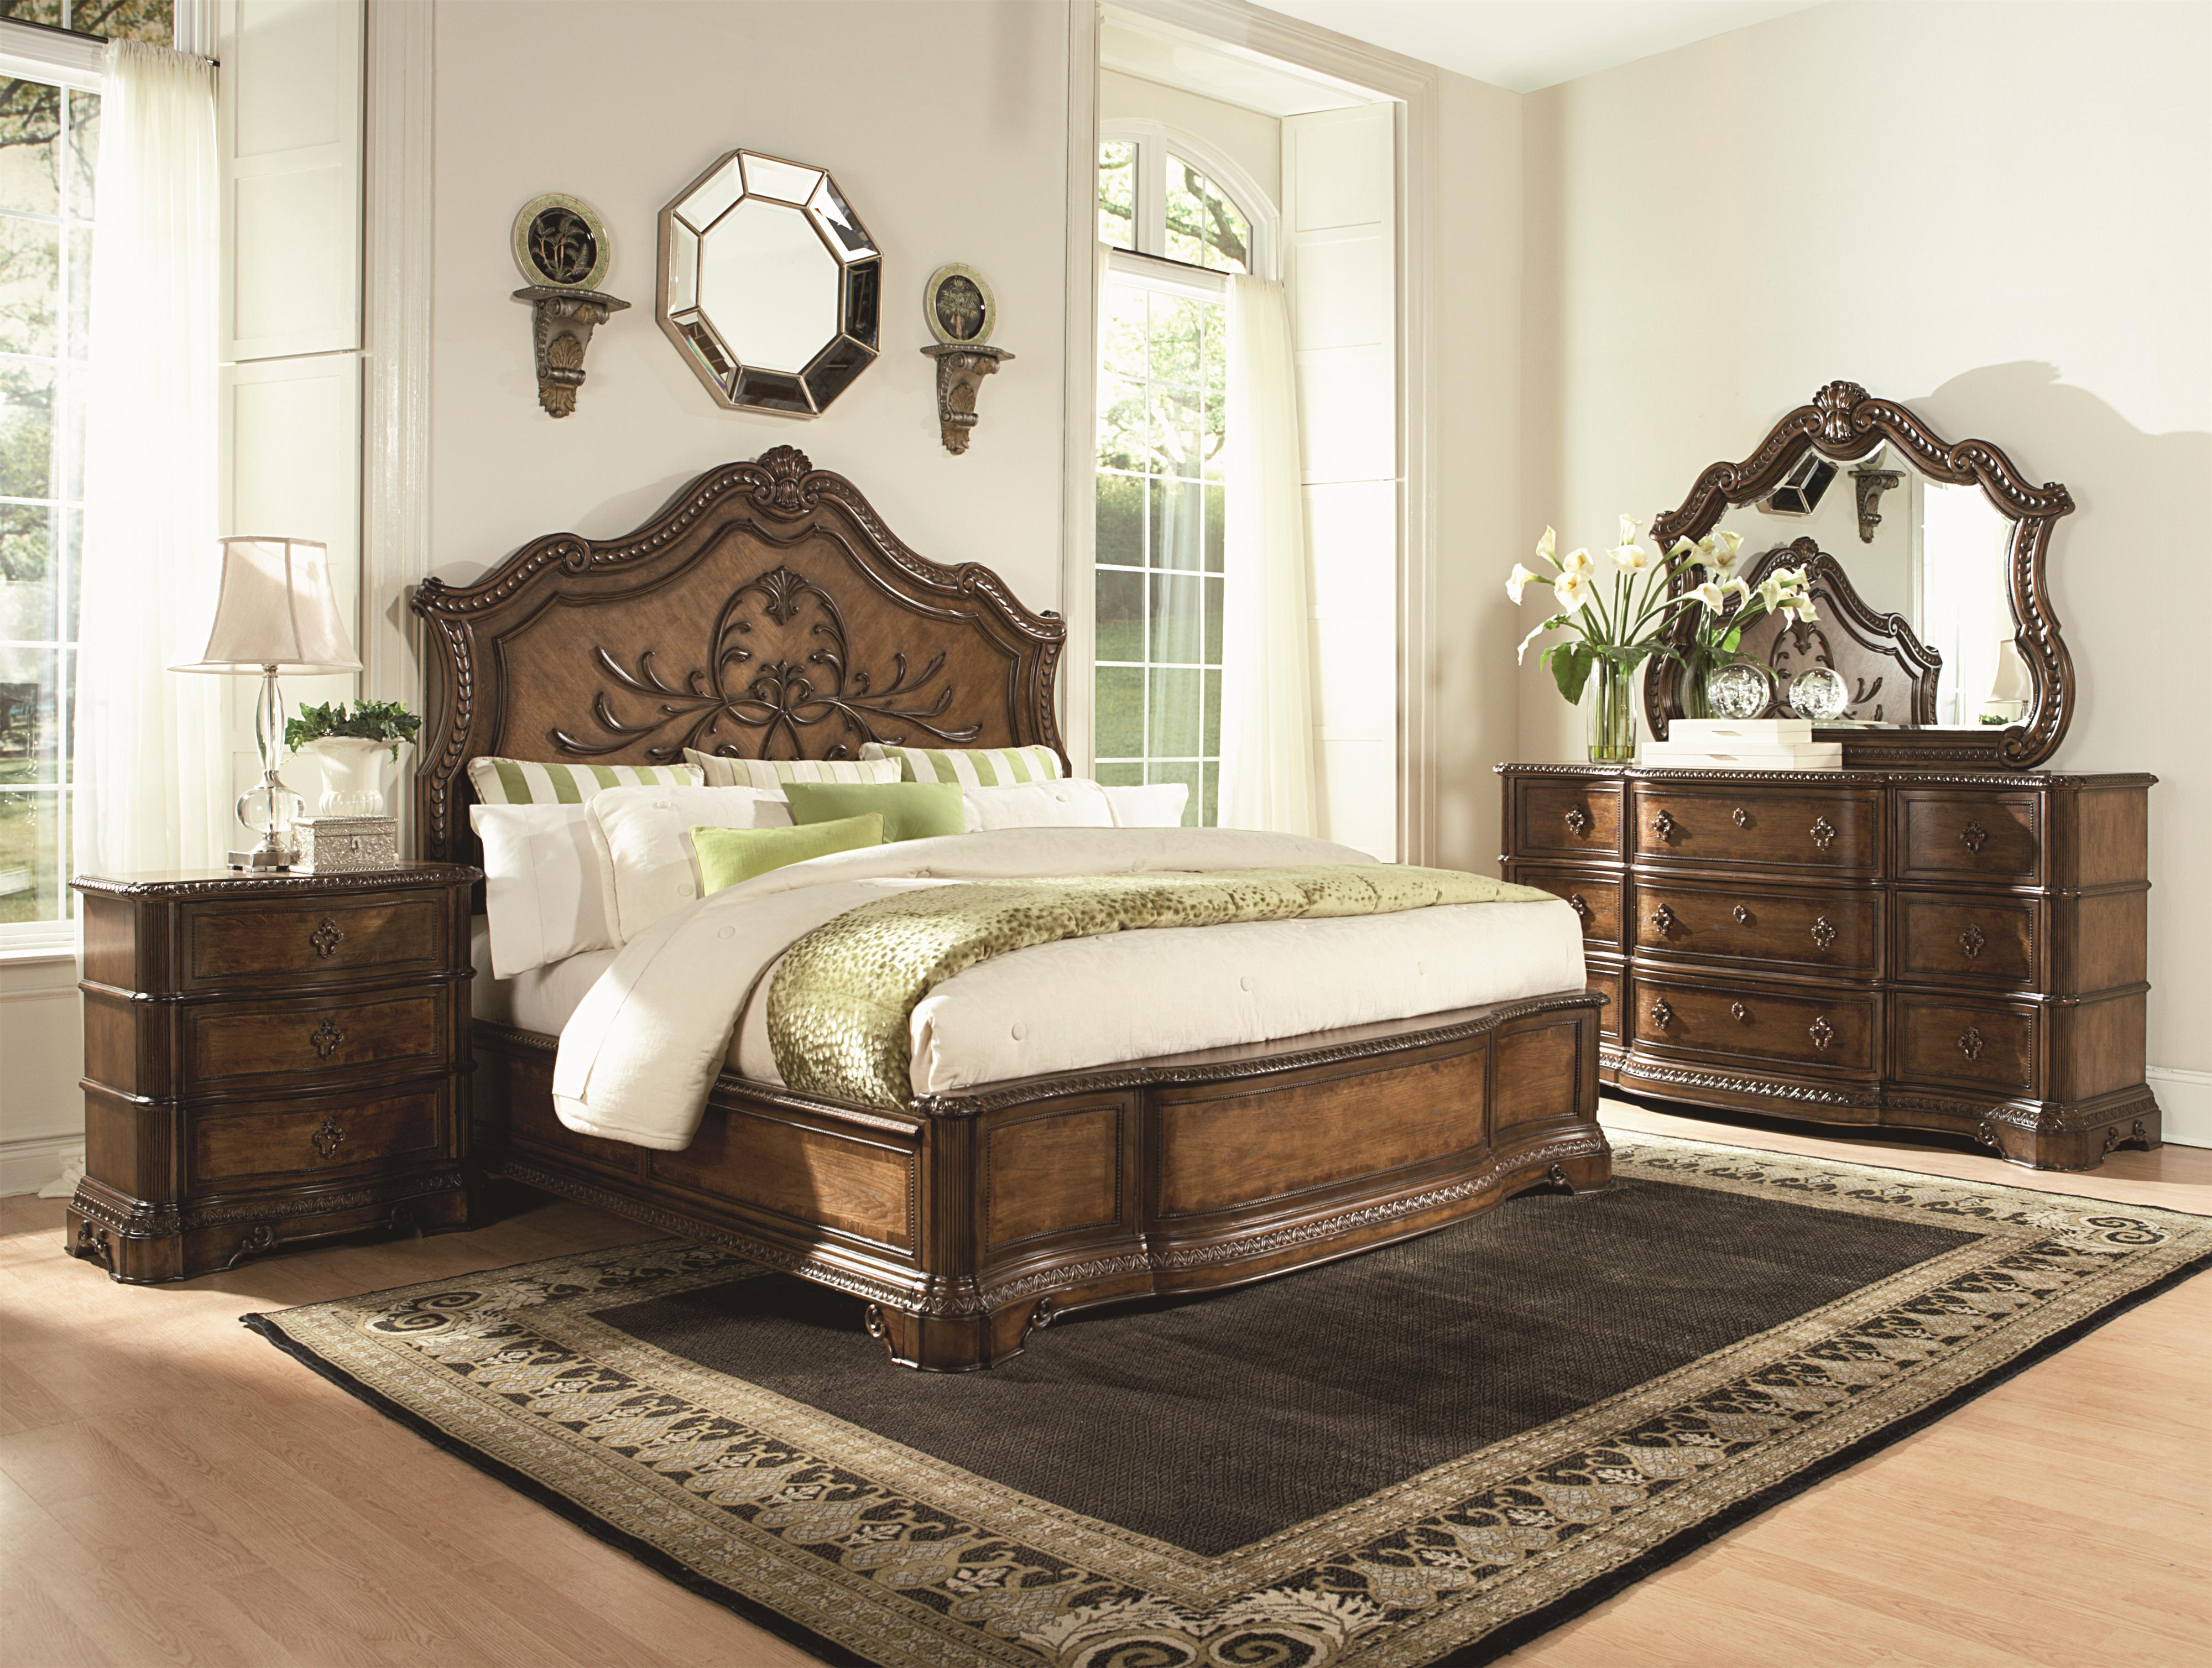 california king panel bed with wood carved details by legacy california king panel bed